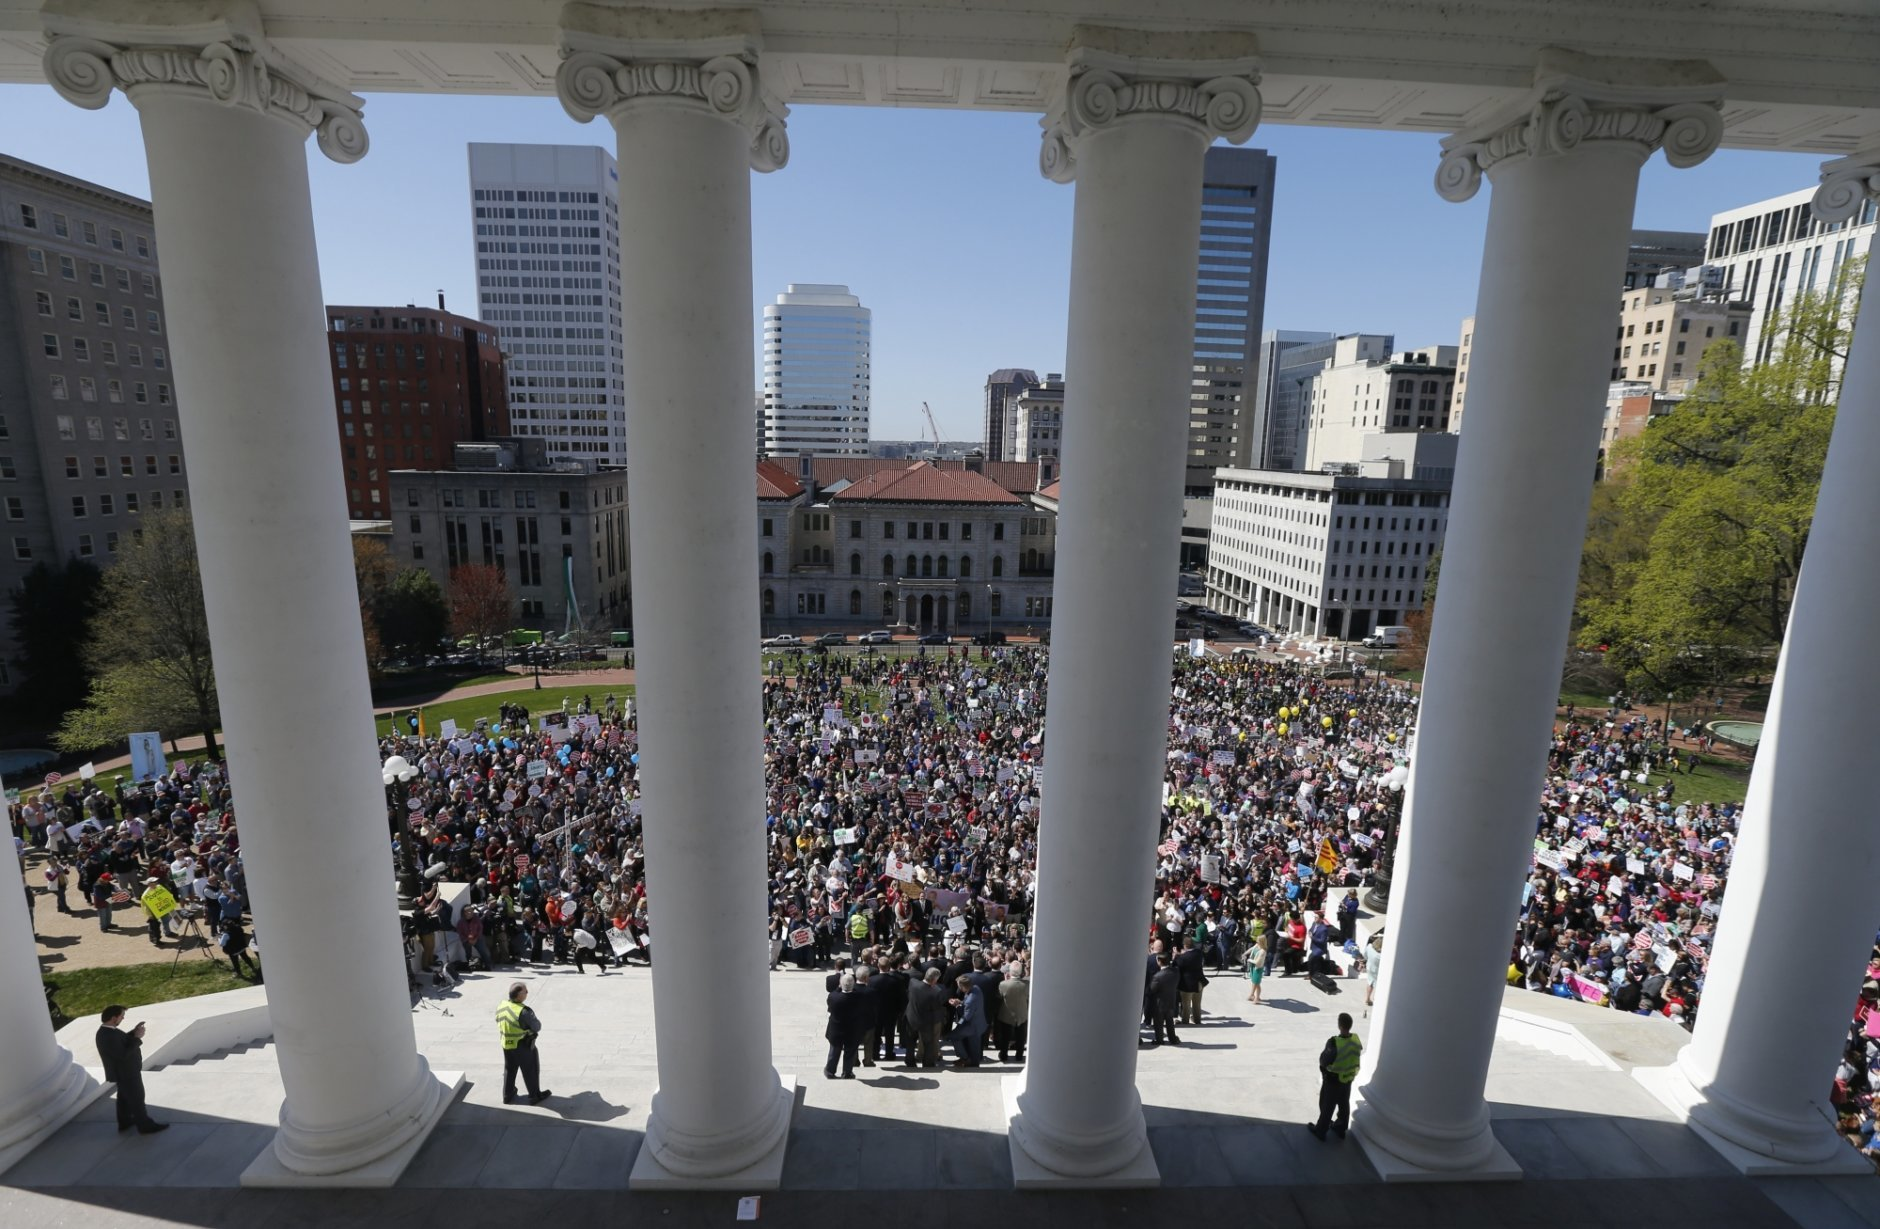 Right to Life marchers gather on the steps of the Capitol to listen to speakers at the Capitol in Richmond, Va., Wednesday, April 3, 2019. (AP Photo/Steve Helber)